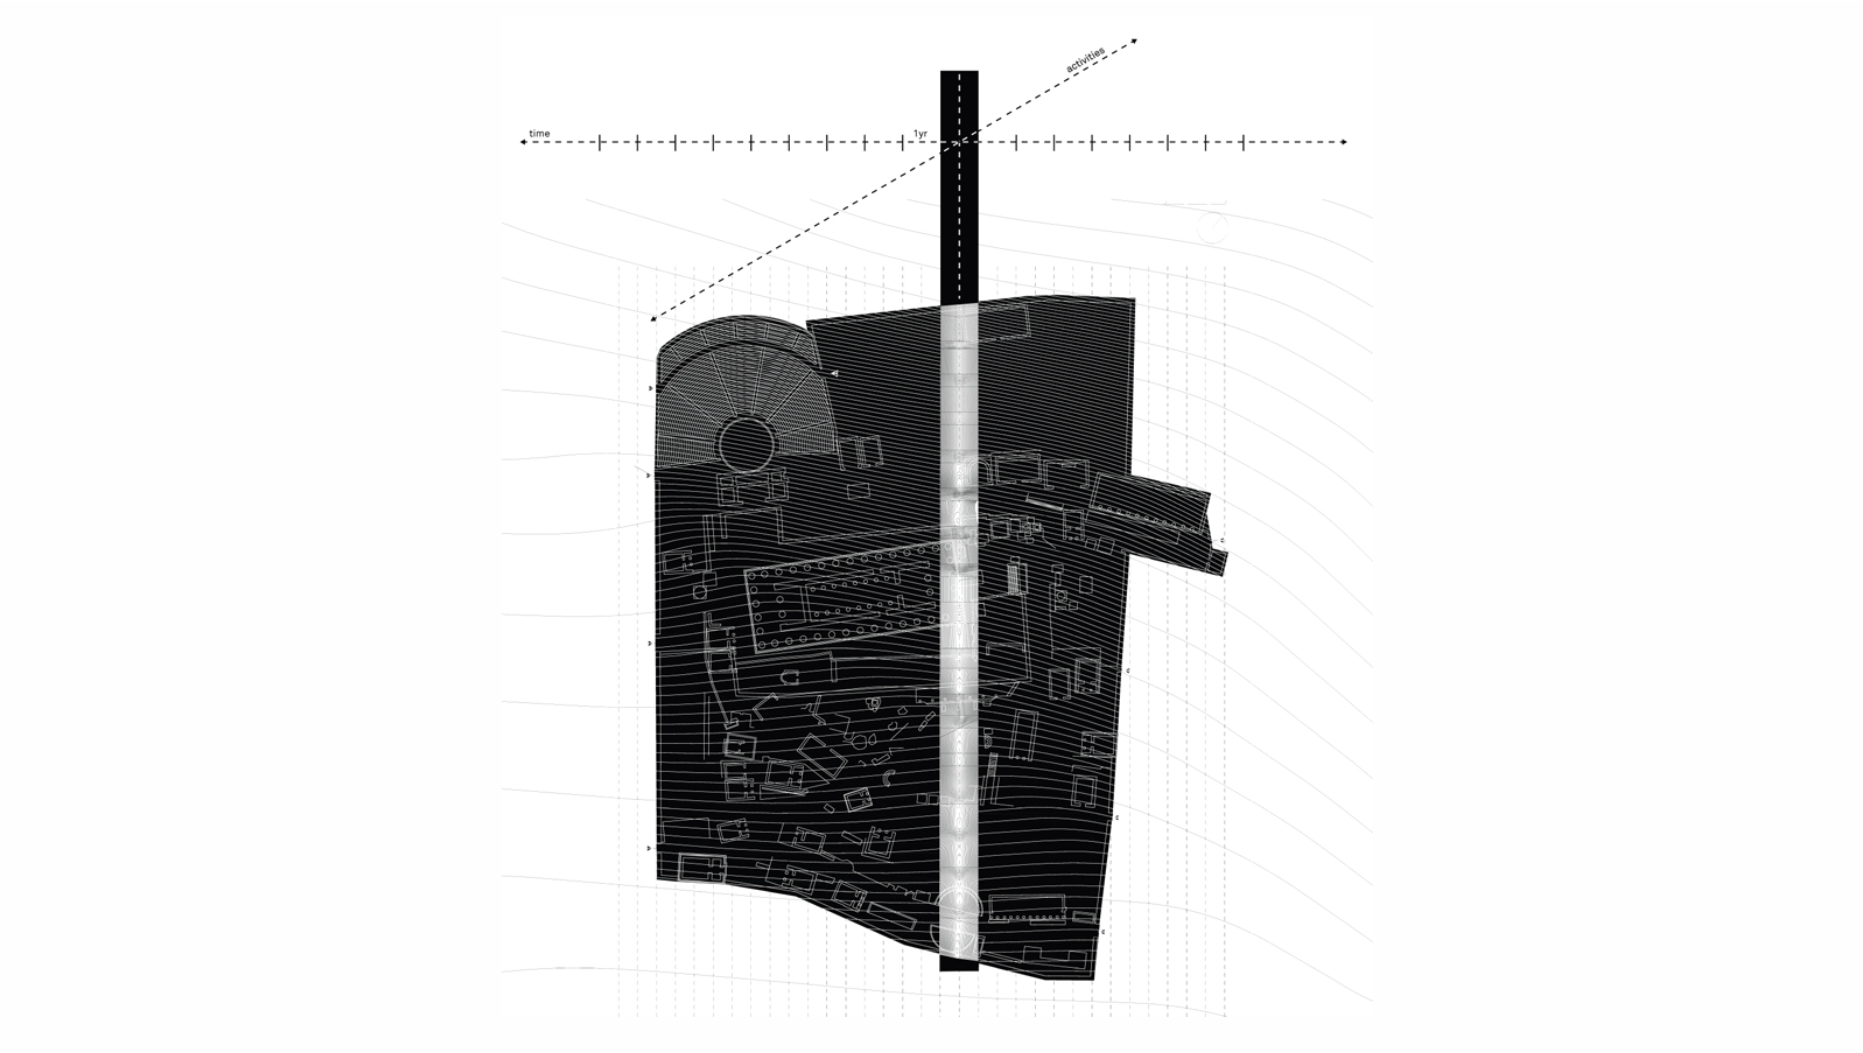 Moertl, C.|'The Infinite Table', Scanning the Layers of Delphi